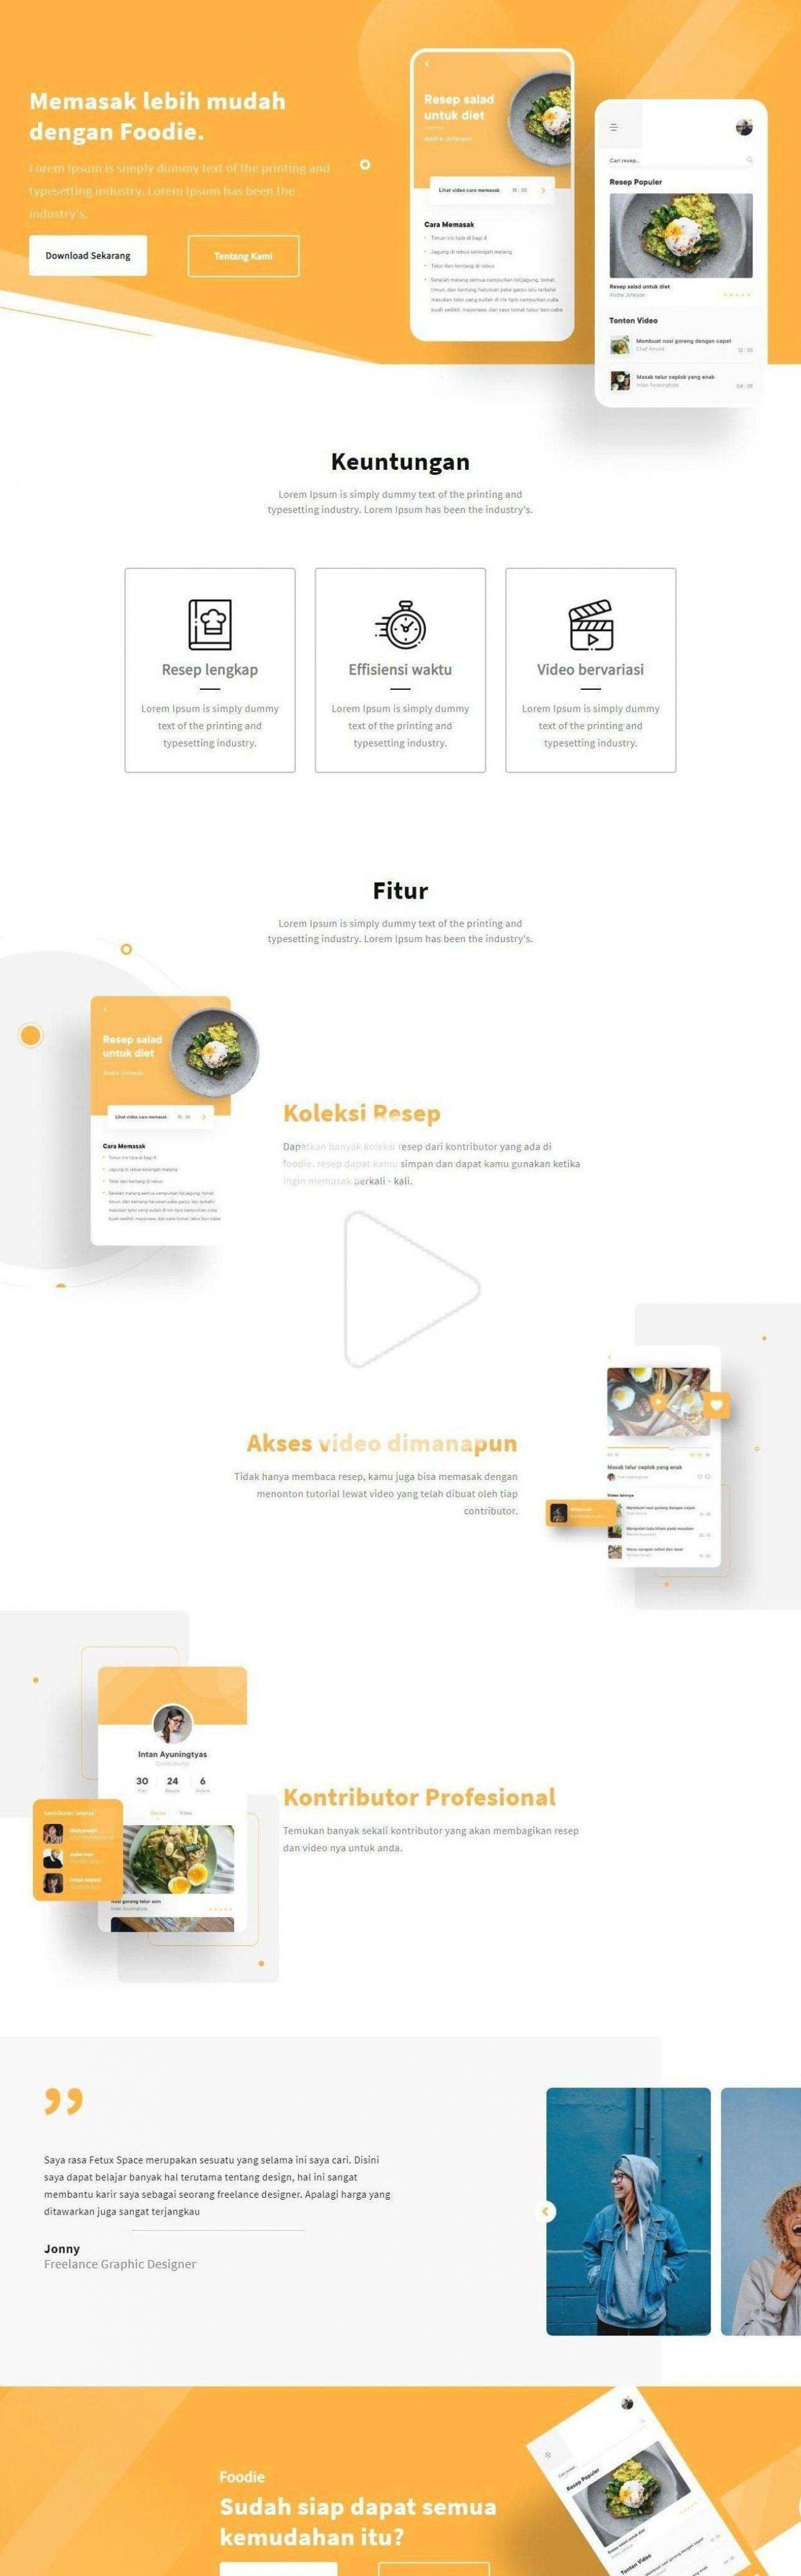 Yes Interactive Web Webdesign In 2020 Interactive Web Design Web Design Creative Web Design